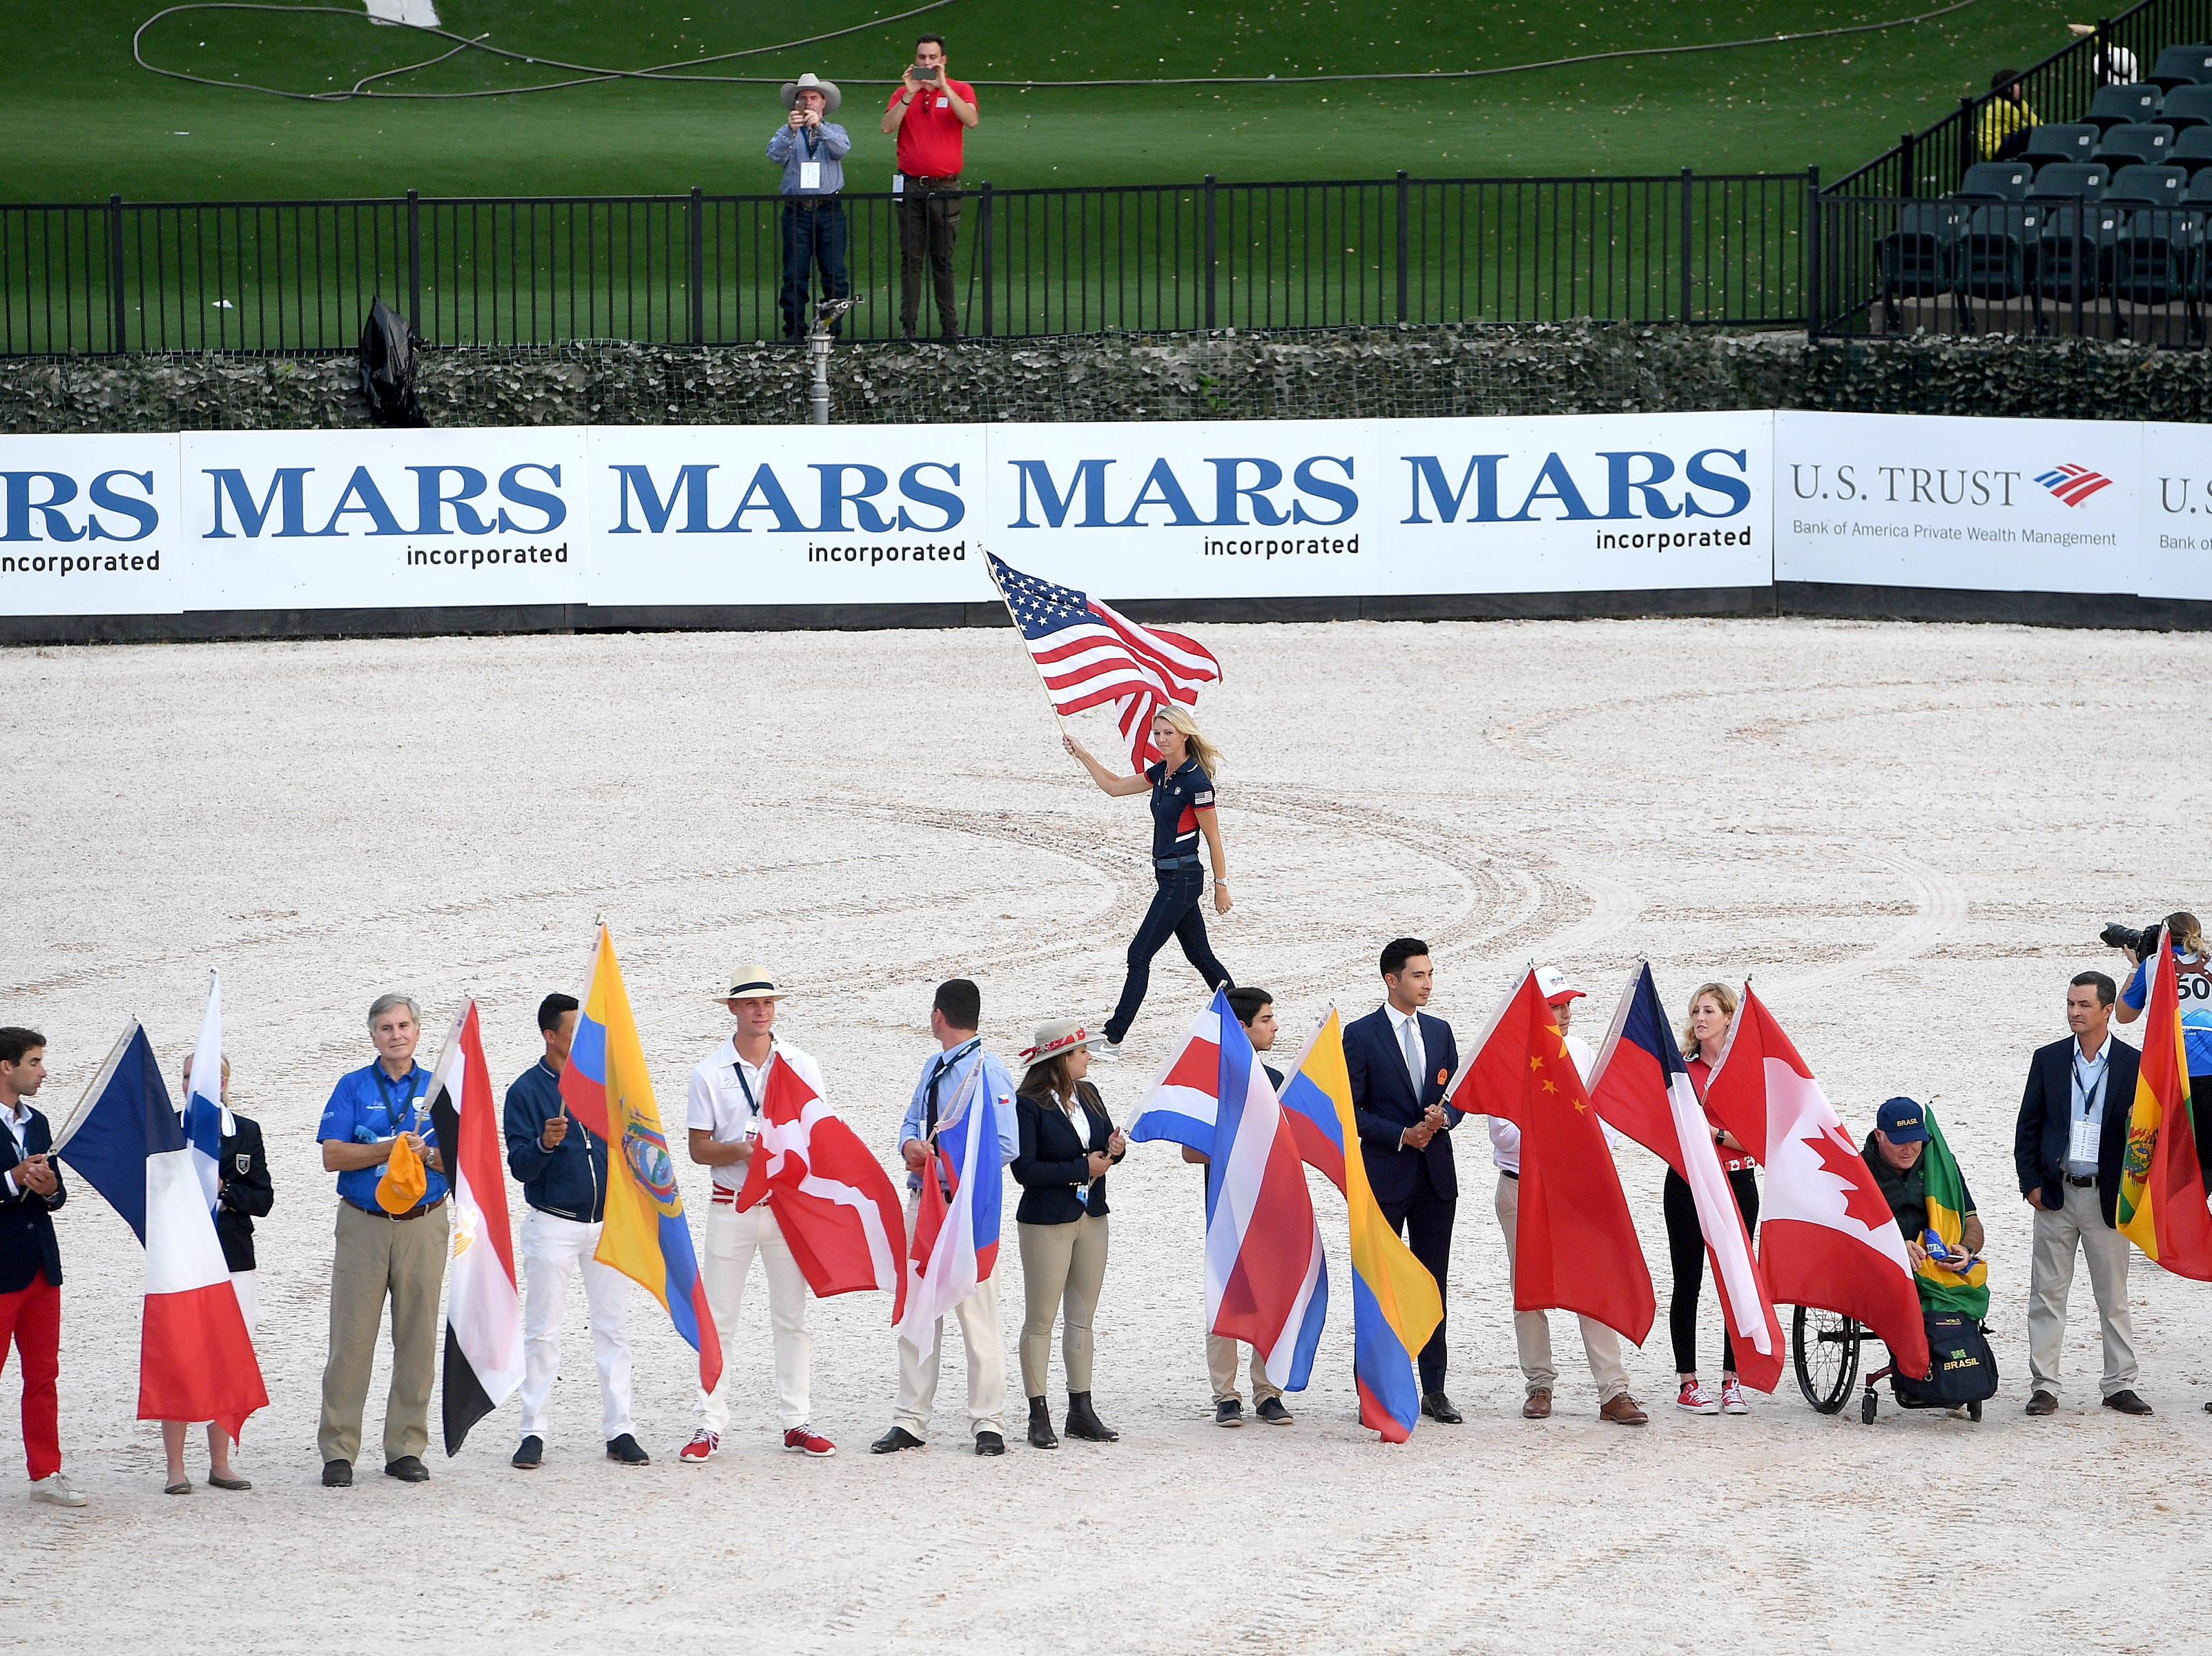 American dressage athlete Laura Graves parades with the American flag during the opening ceremony for the FEI World Equestrian Games at the Tryon International Equestrian Center on Sept. 11, 2018.